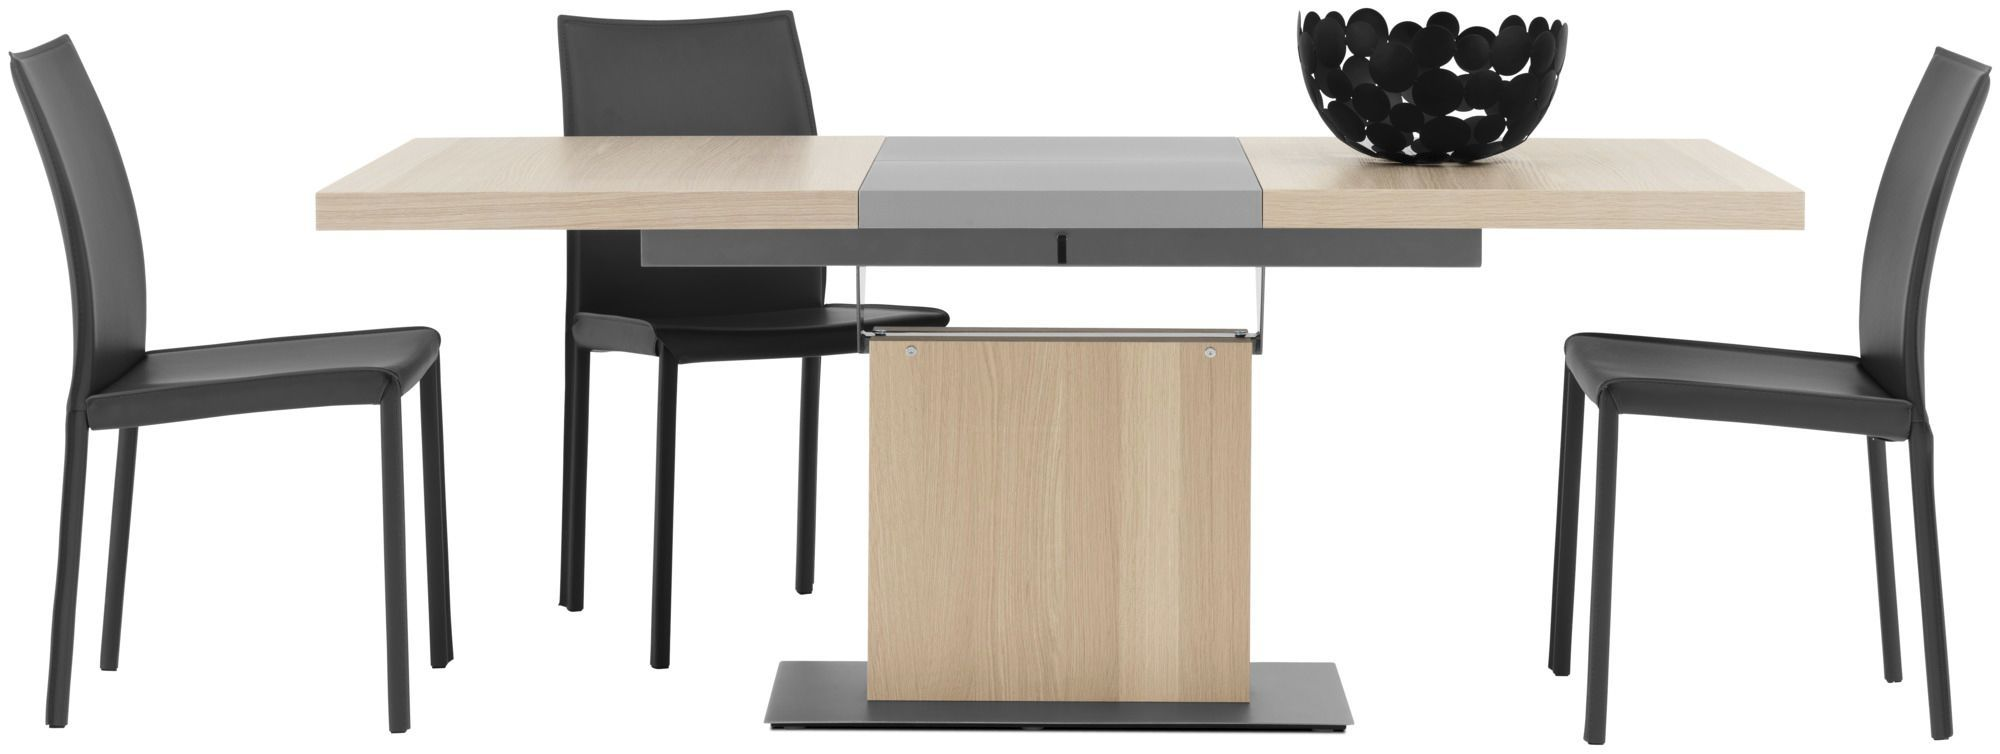 Delicieux ... Contemporary Dining Table / MDF / Steel / Rectangular ...